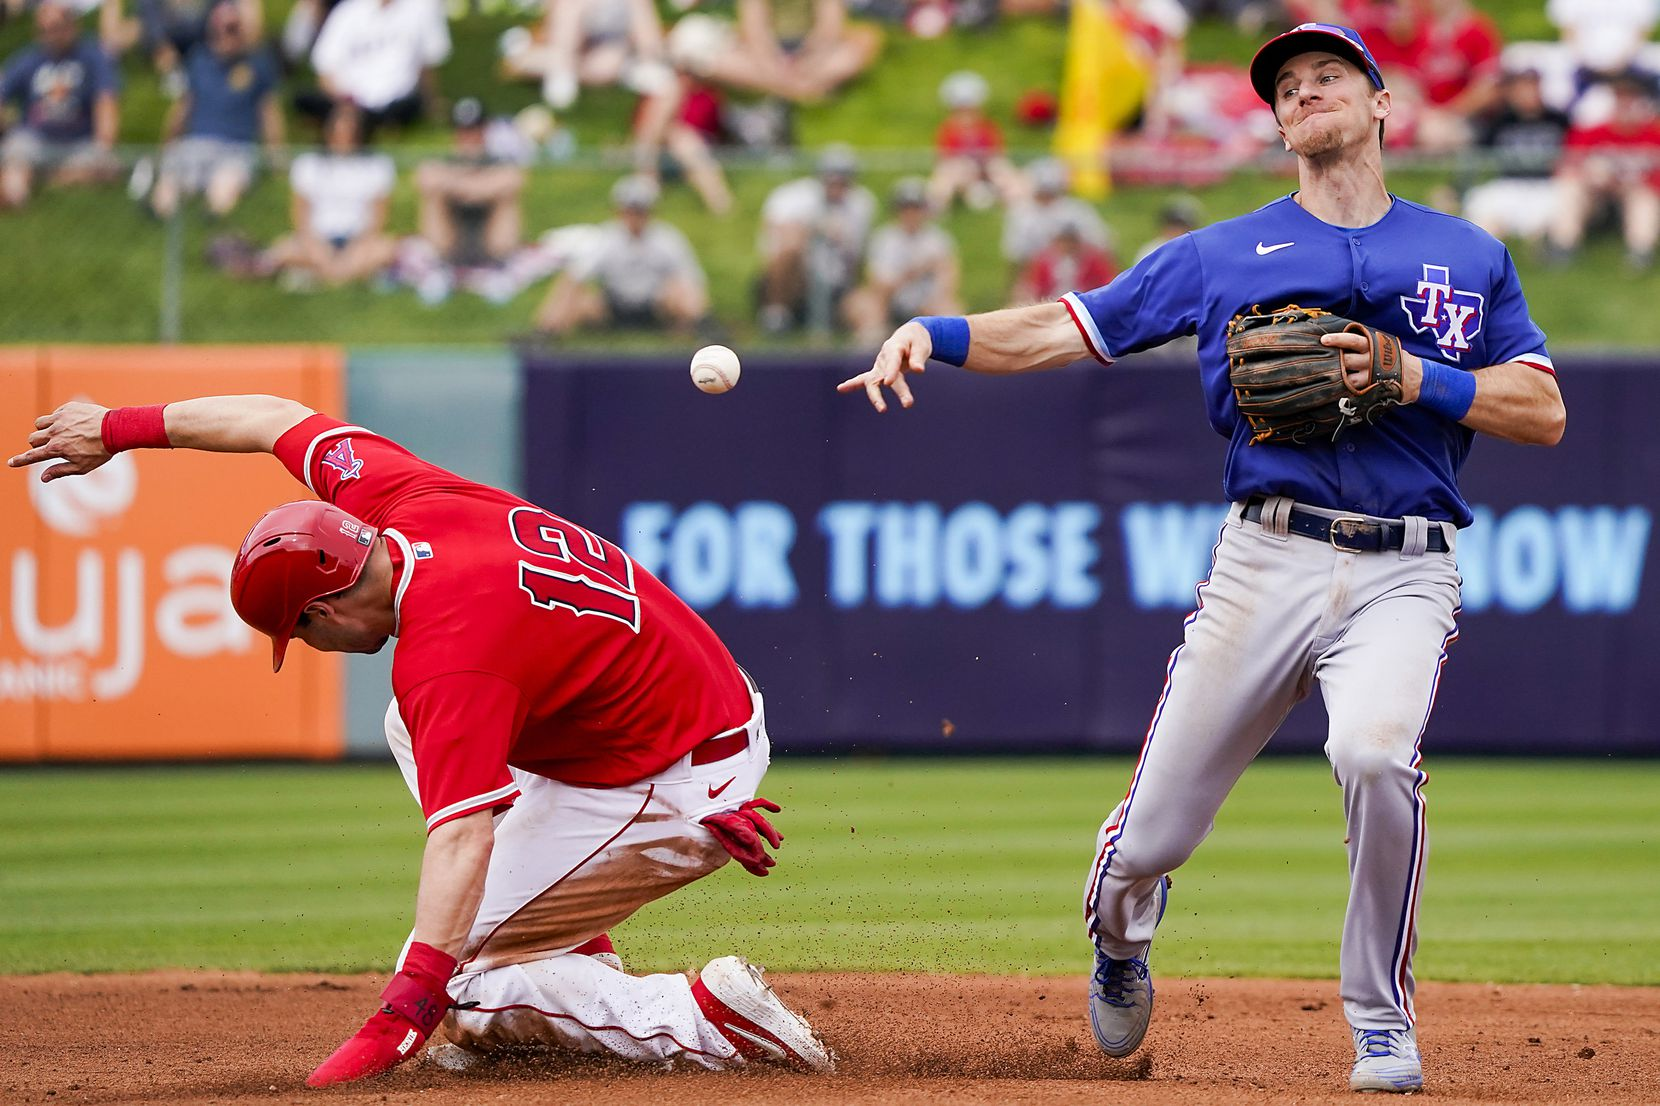 Texas Rangers shortstop Matt Duffy makes the relay over Los Angeles Angels catcher Anthony Bemboom trying to turn a double play during the fourth inning of a spring training game at Tempe Diablo Stadium on Friday, Feb. 28, 2020, in Tempe, Ariz.